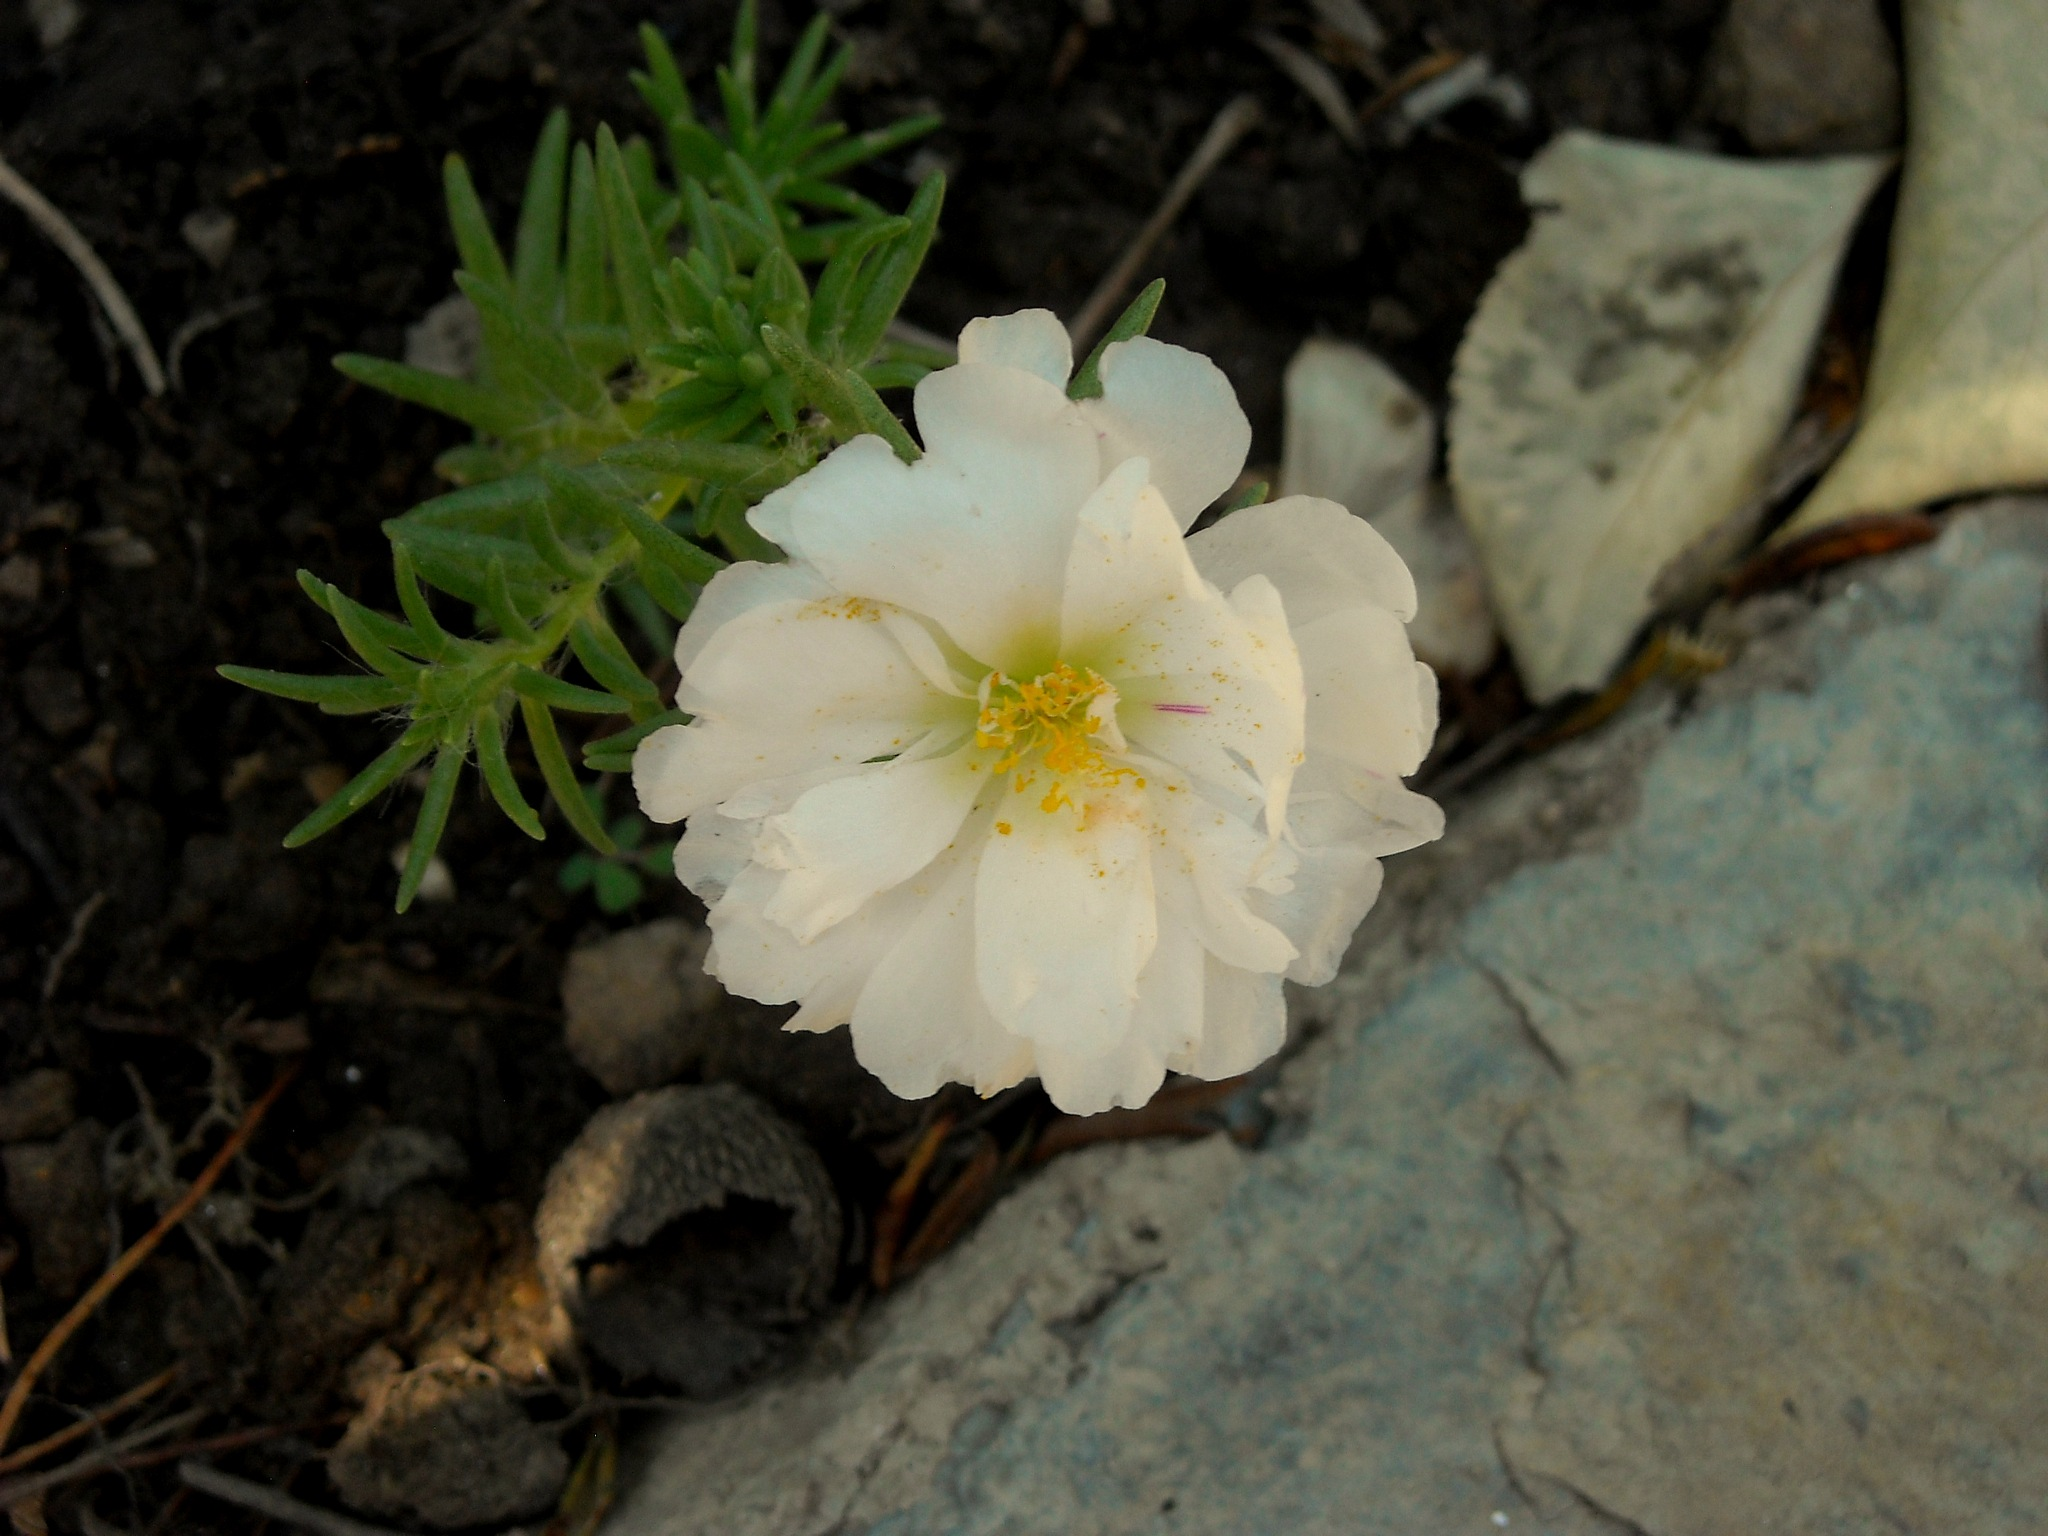 BEAUTIFUL WHITE SILK FLOWER BY THE PAVEMENT by Akin Saner